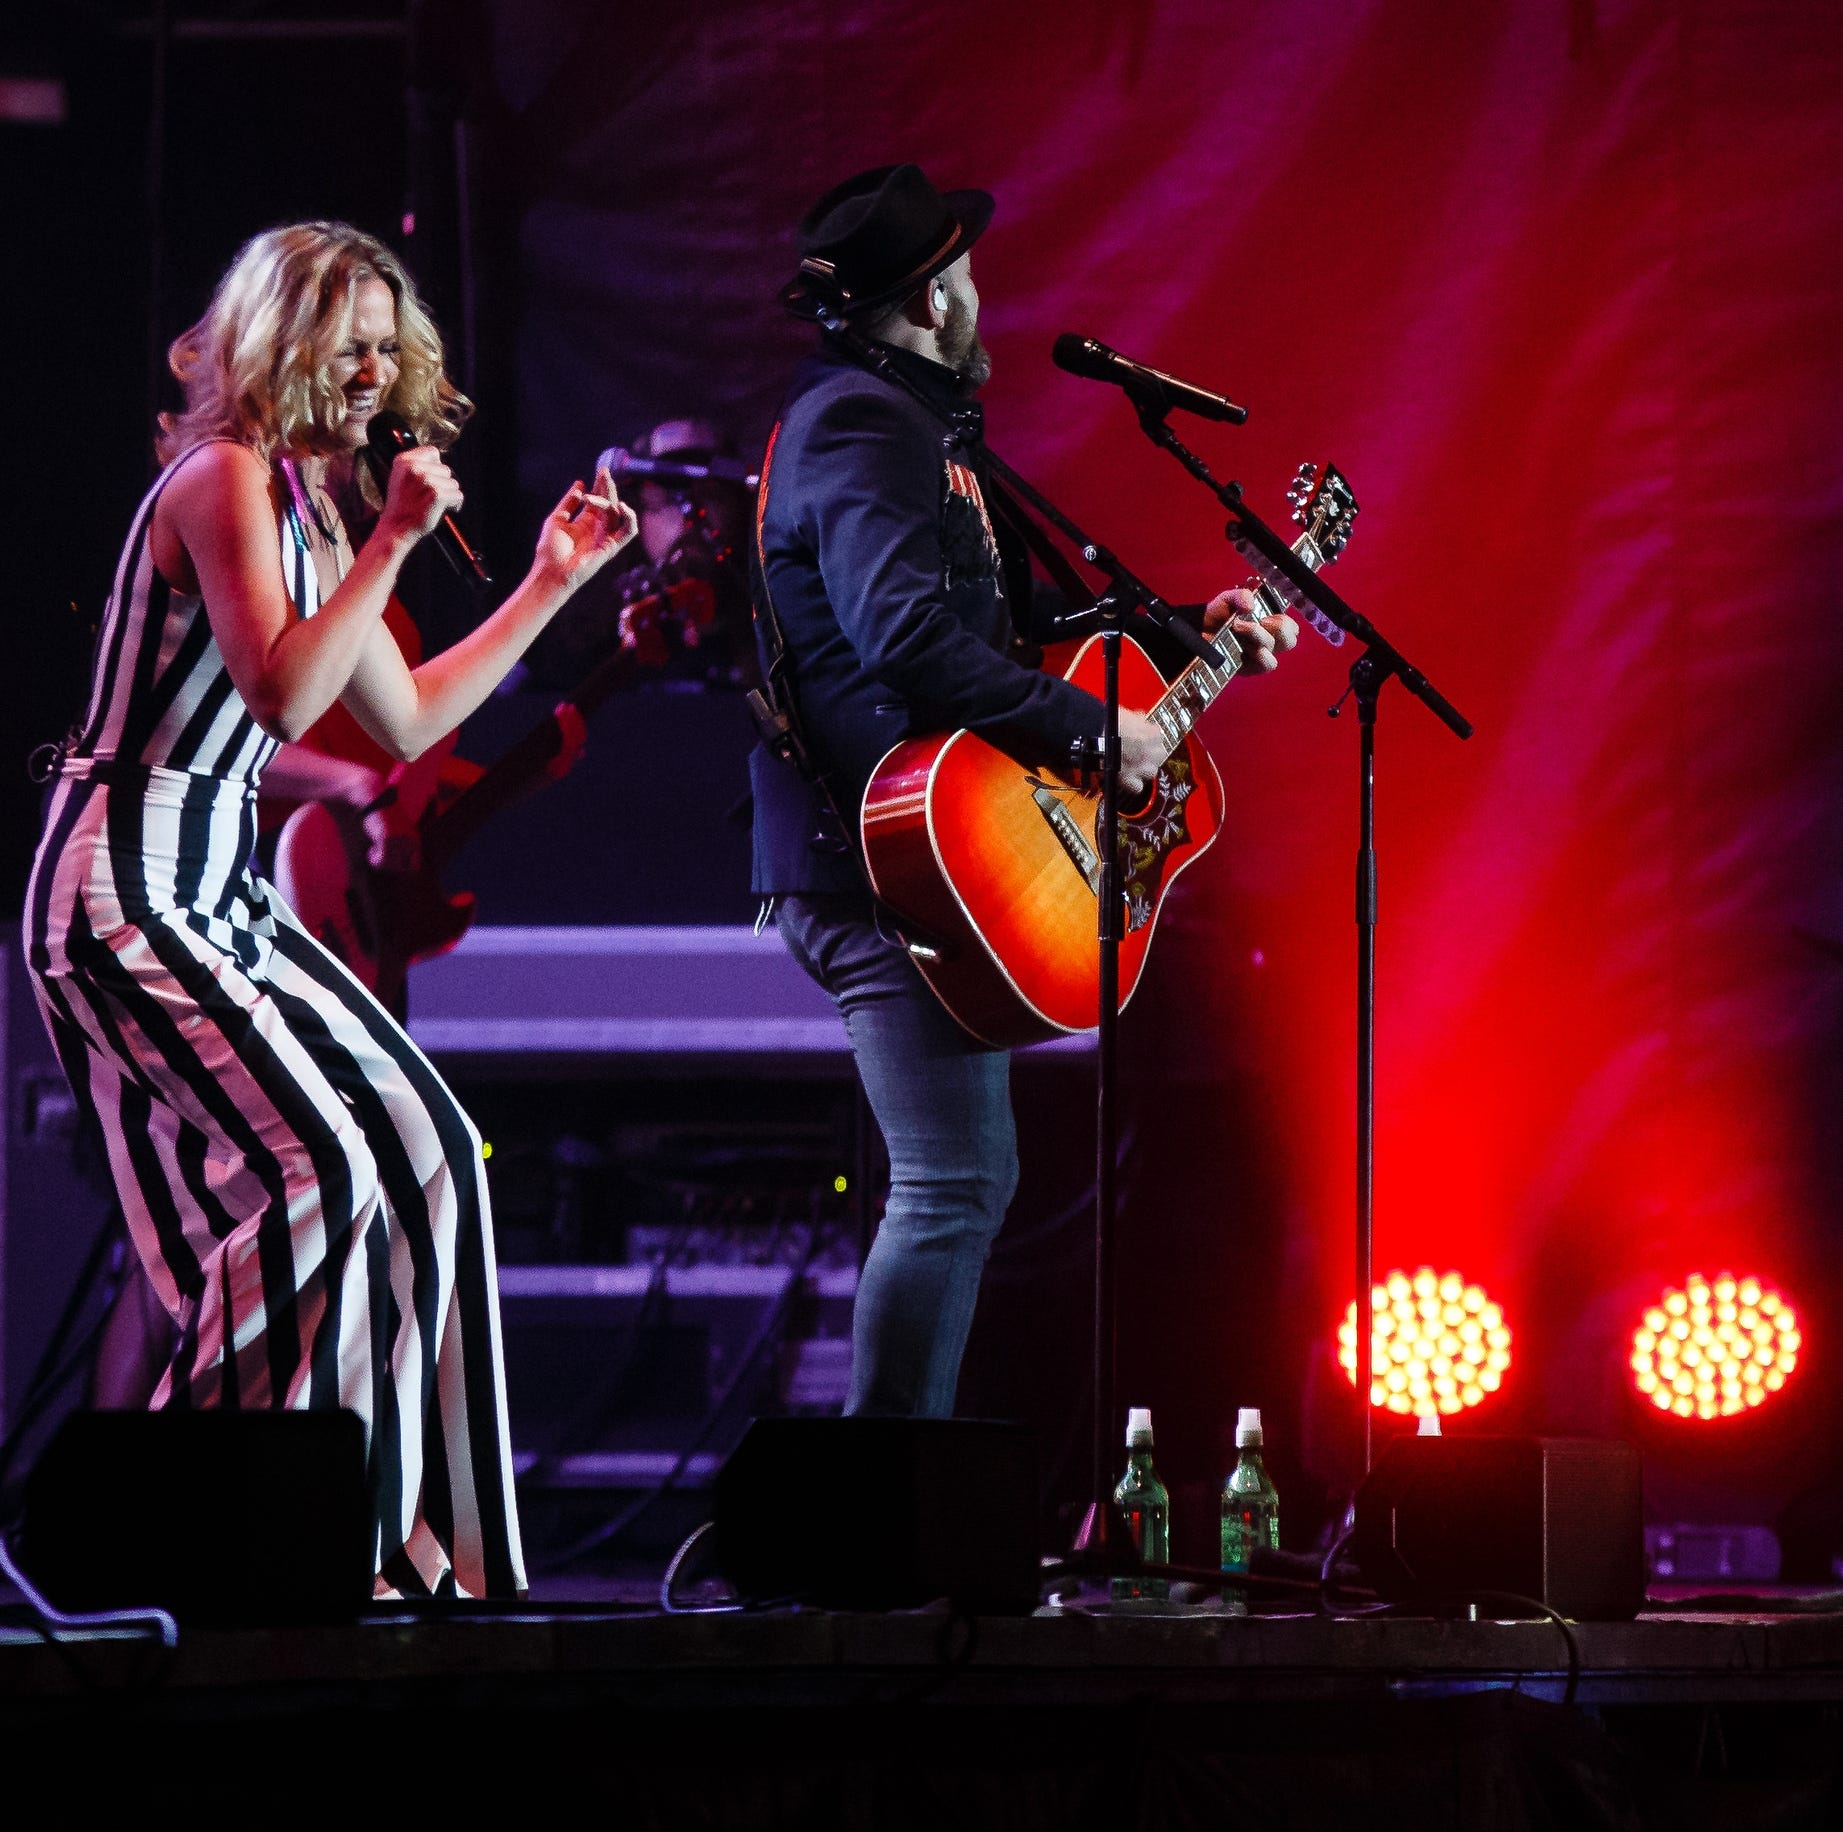 Sugarland brings a night of country fun to the Iowa State Fair's Grandstand